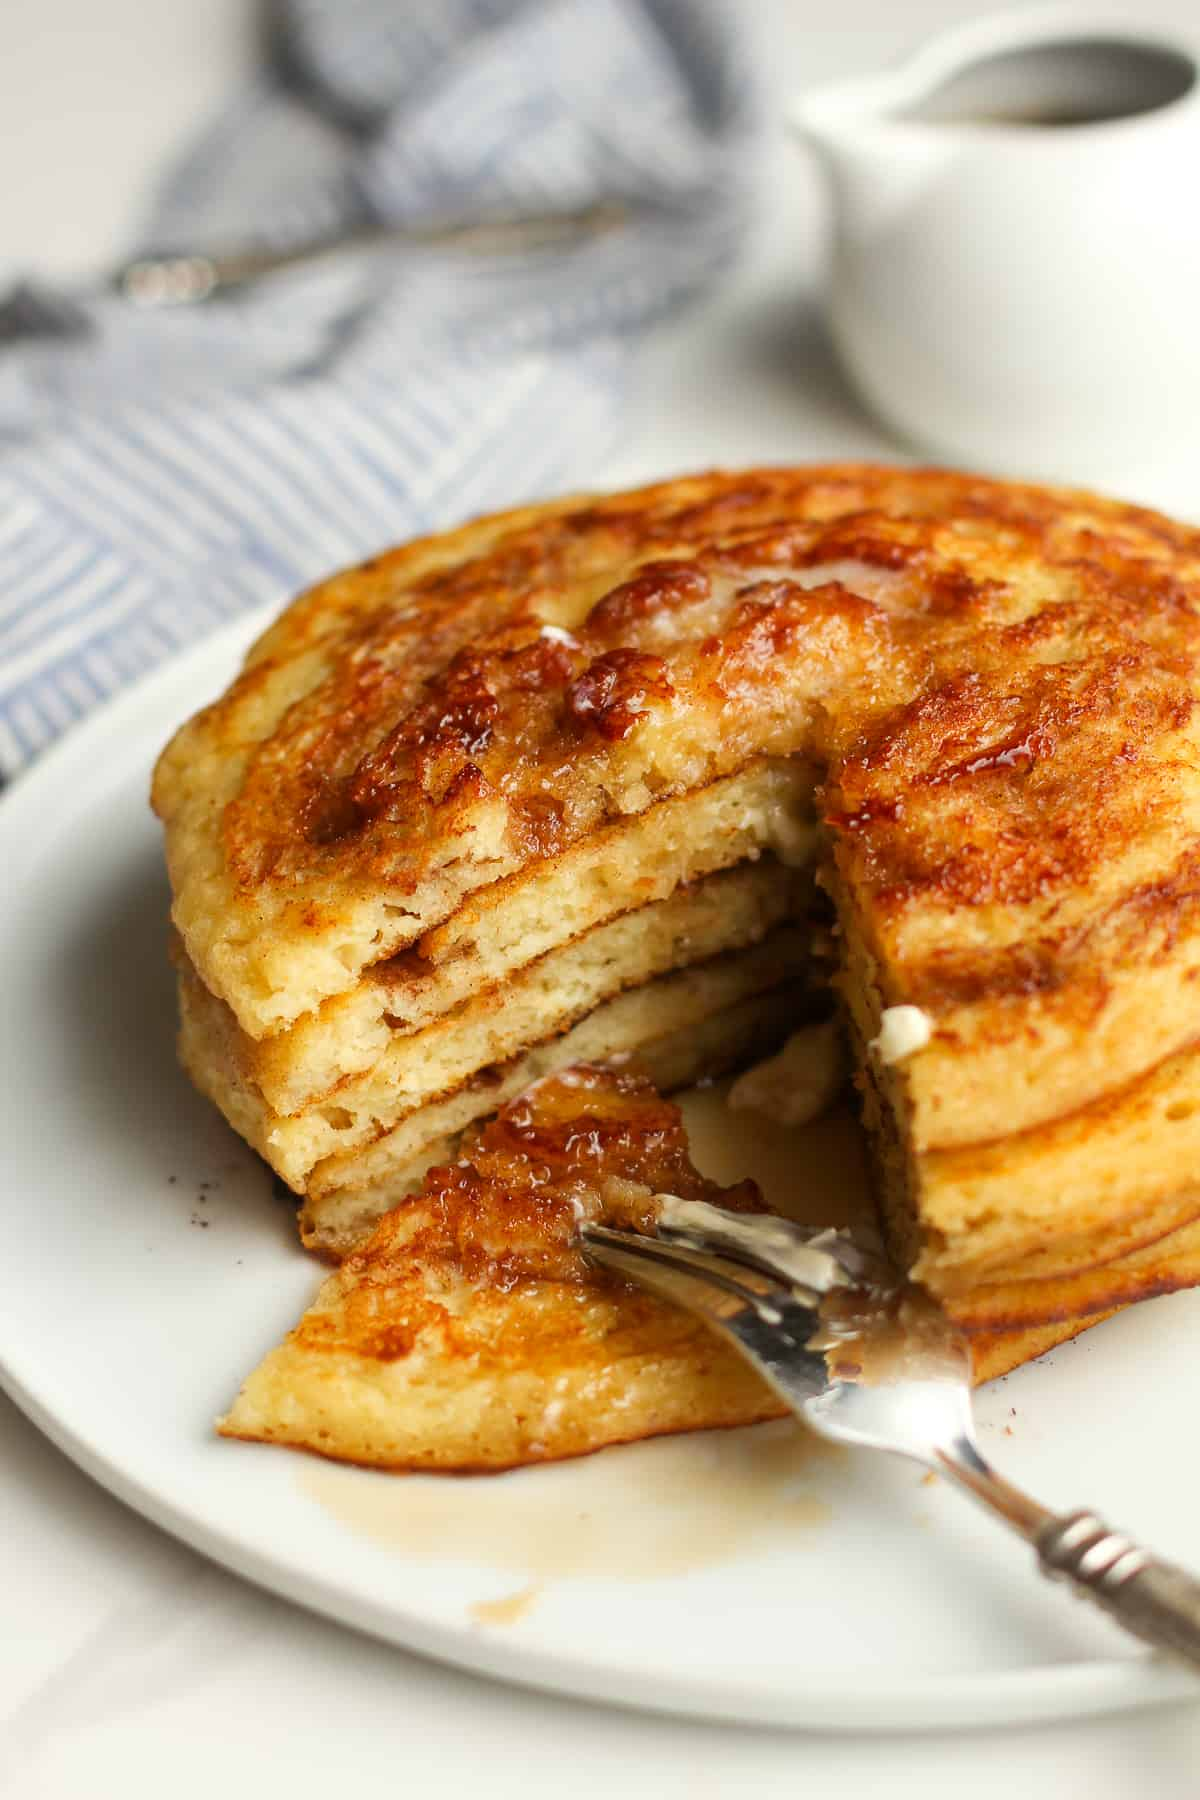 A plate of a stack of pancakes, with a section cut out.